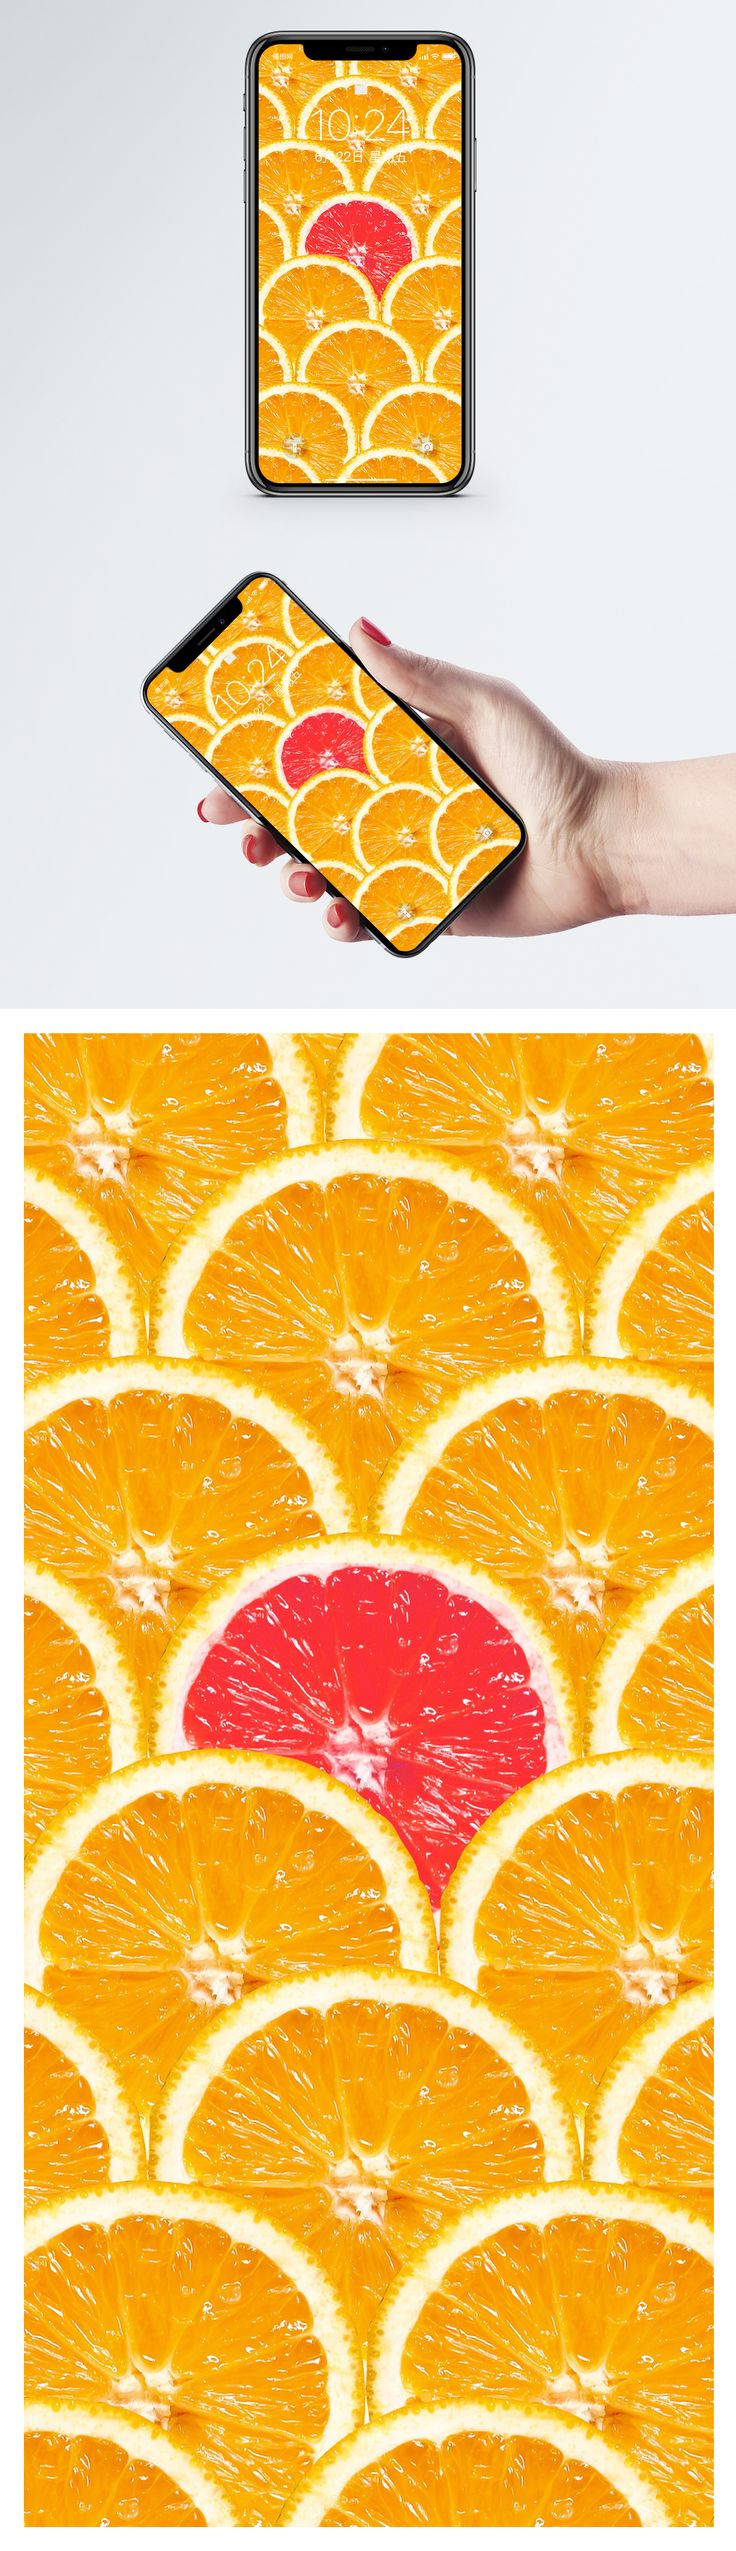 Different orange handset wallpaper  fresh fruit, yellow background, personality, creativity, fashion, summer pictures, cellphone wallpaper, mobile phone desktop, cell phone screensaver. Different orange handset wallpaper  fresh fruit, yellow background, personality, creativity, fashion, summer pictures, cellphone wallpaper, mobile phone desktop, cell phone screensaver.